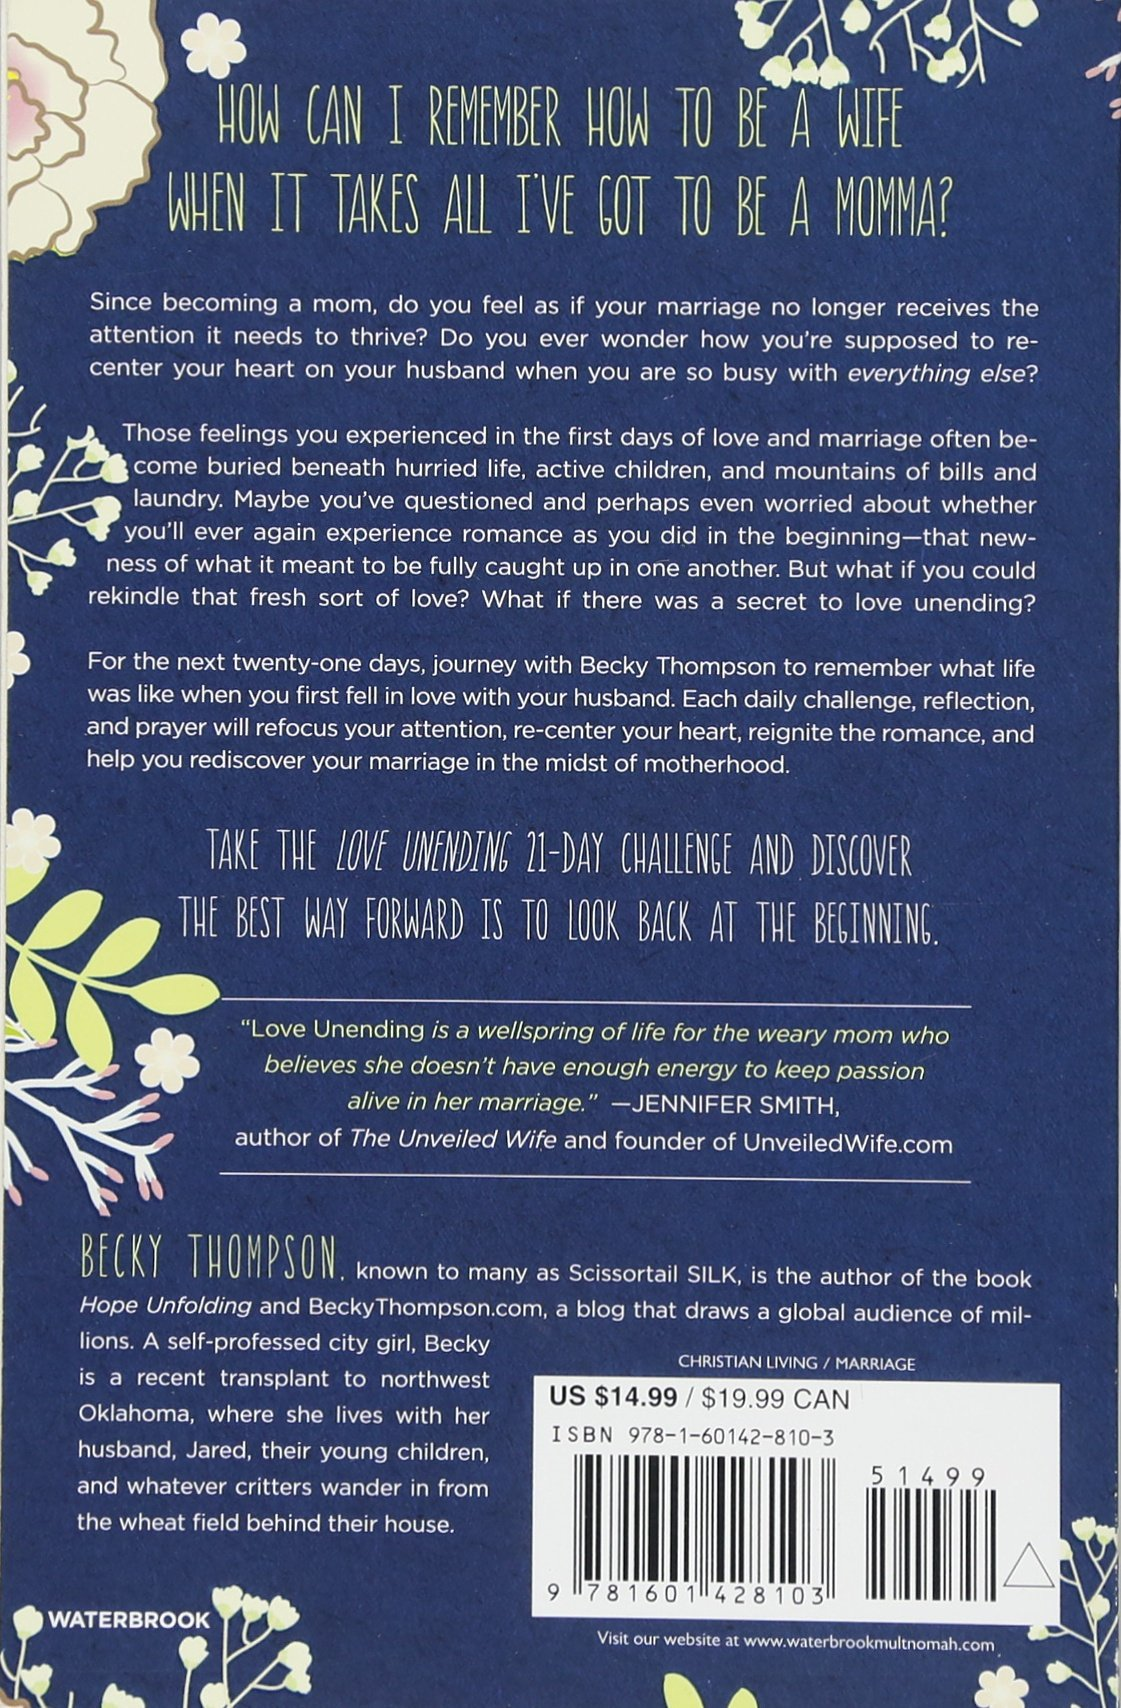 Love Unending: Rediscovering Your Marriage in the Midst of